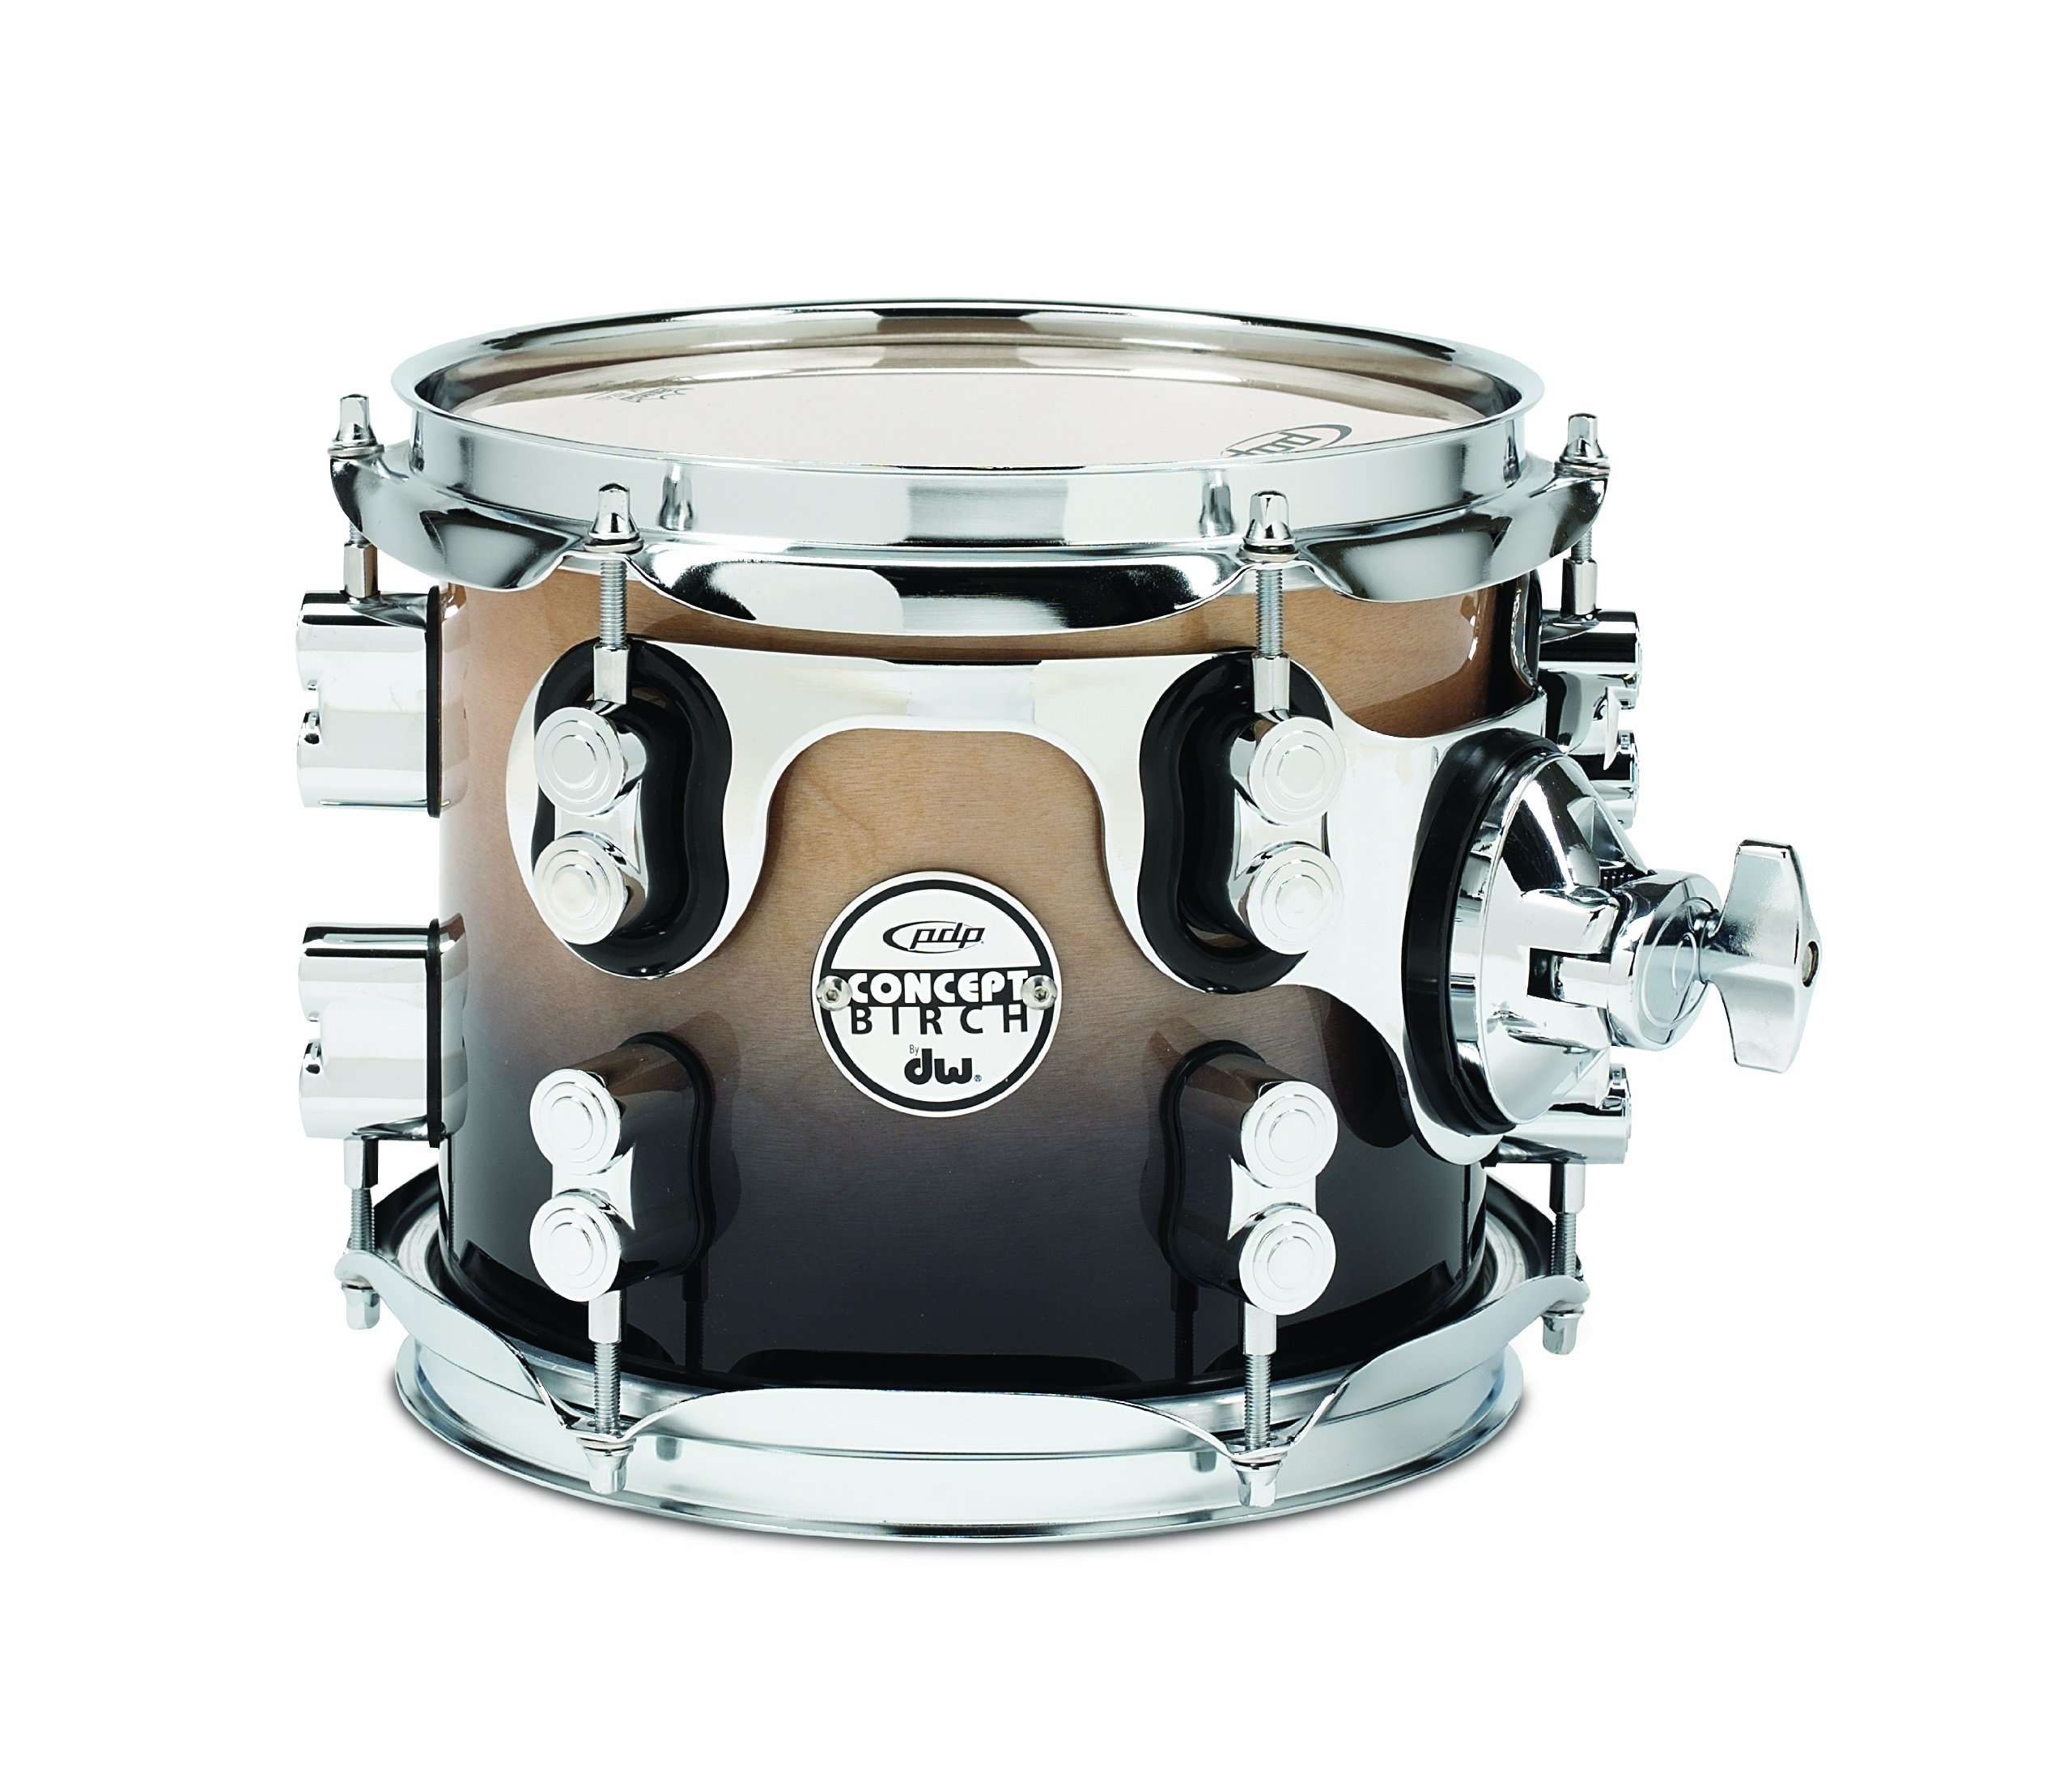 Pacific Drums PDCB0708STNC 7 x 8 Inches Tom with Chrome Hardware - Natural to Charcoal Fade